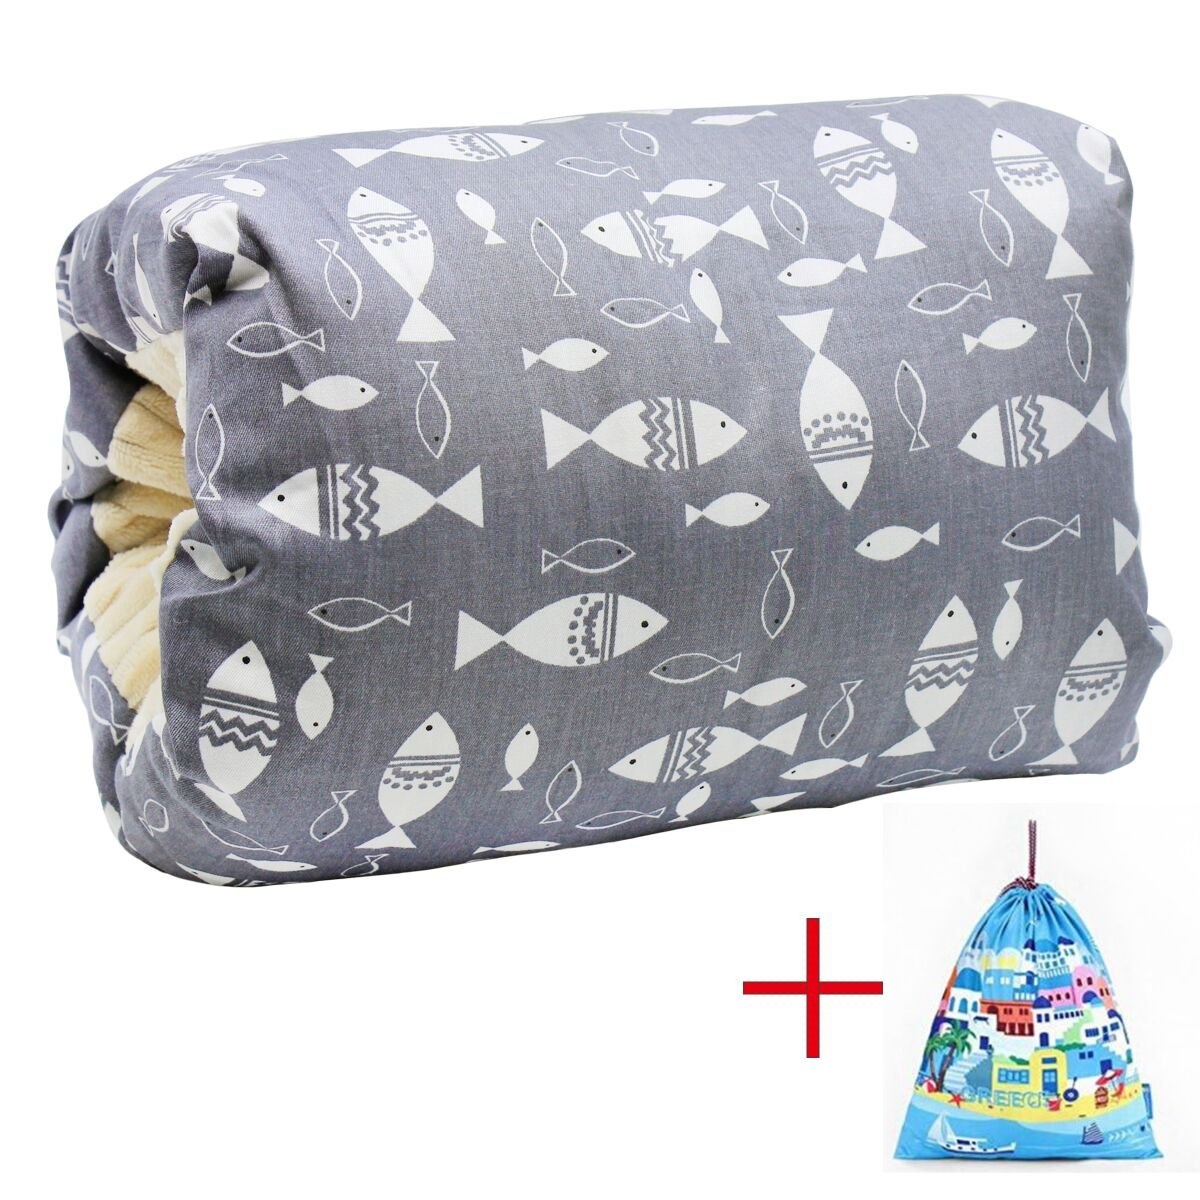 Baby Feeding Pillow, Travel Nursing Pillow Portable Arm Breastfeeding Pillow, Slip-On Arm Support for for C-Sections Mom IHClink